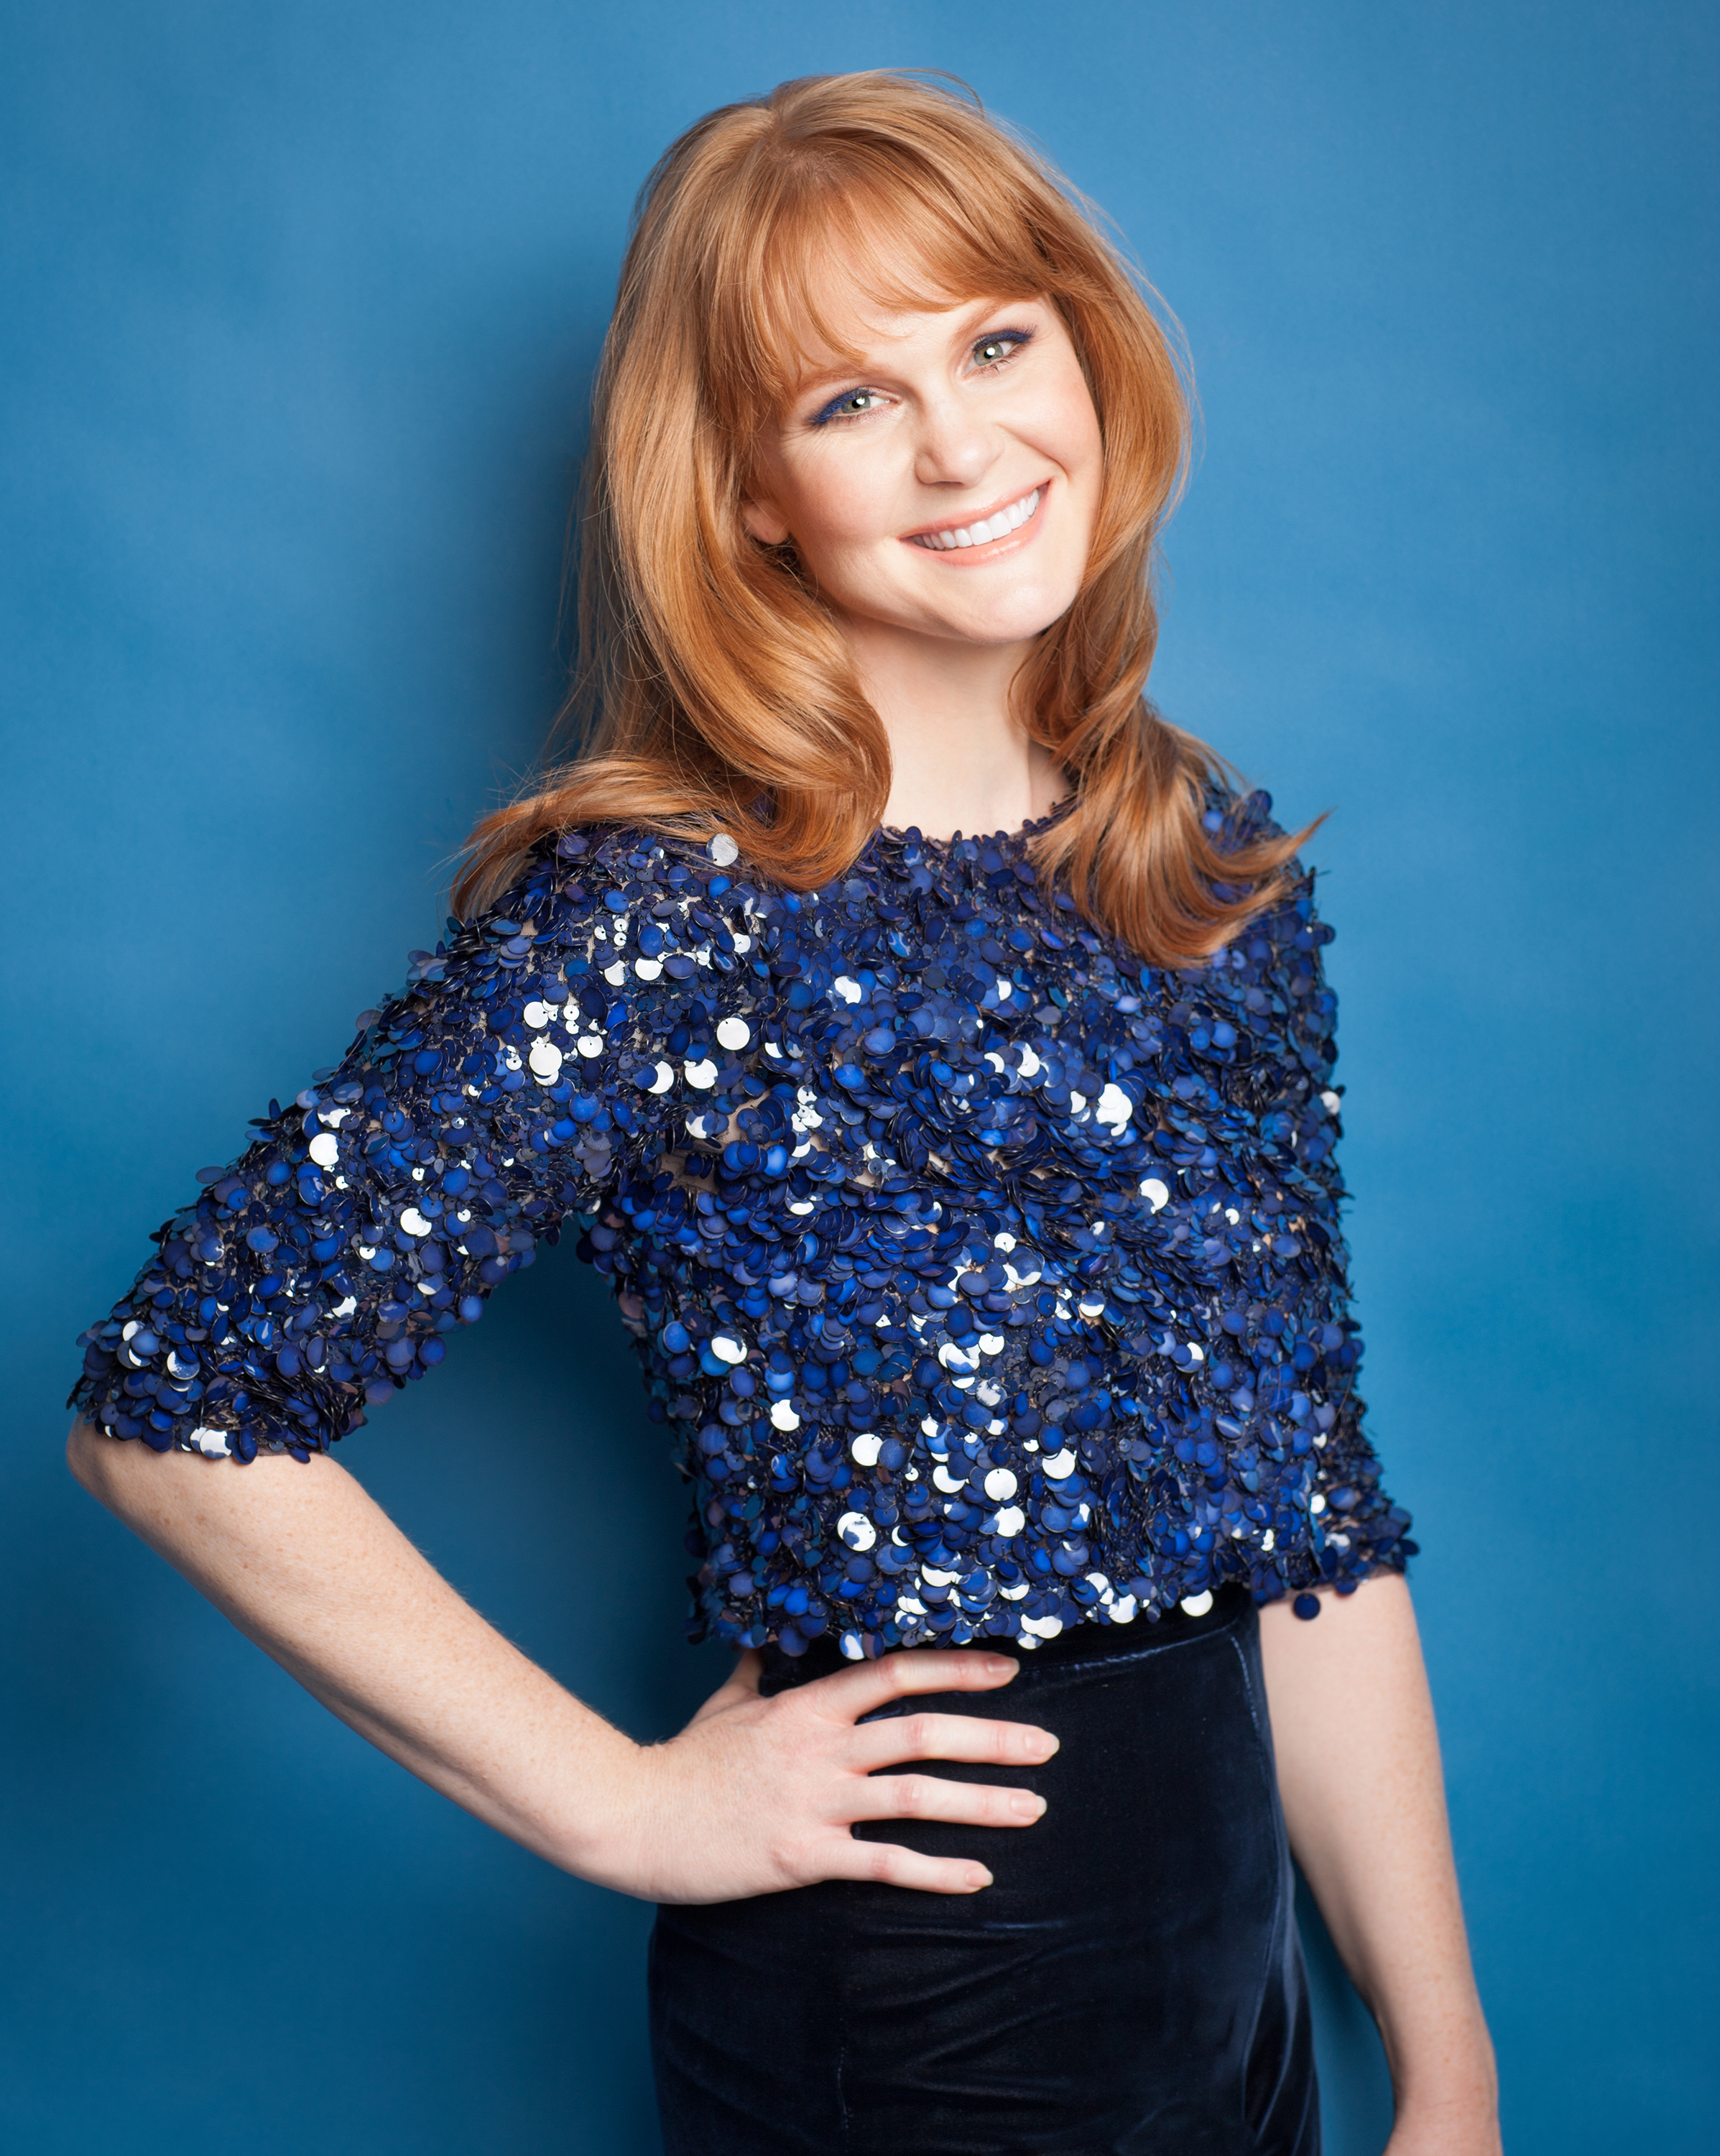 kate baldwin 2_364.jpg